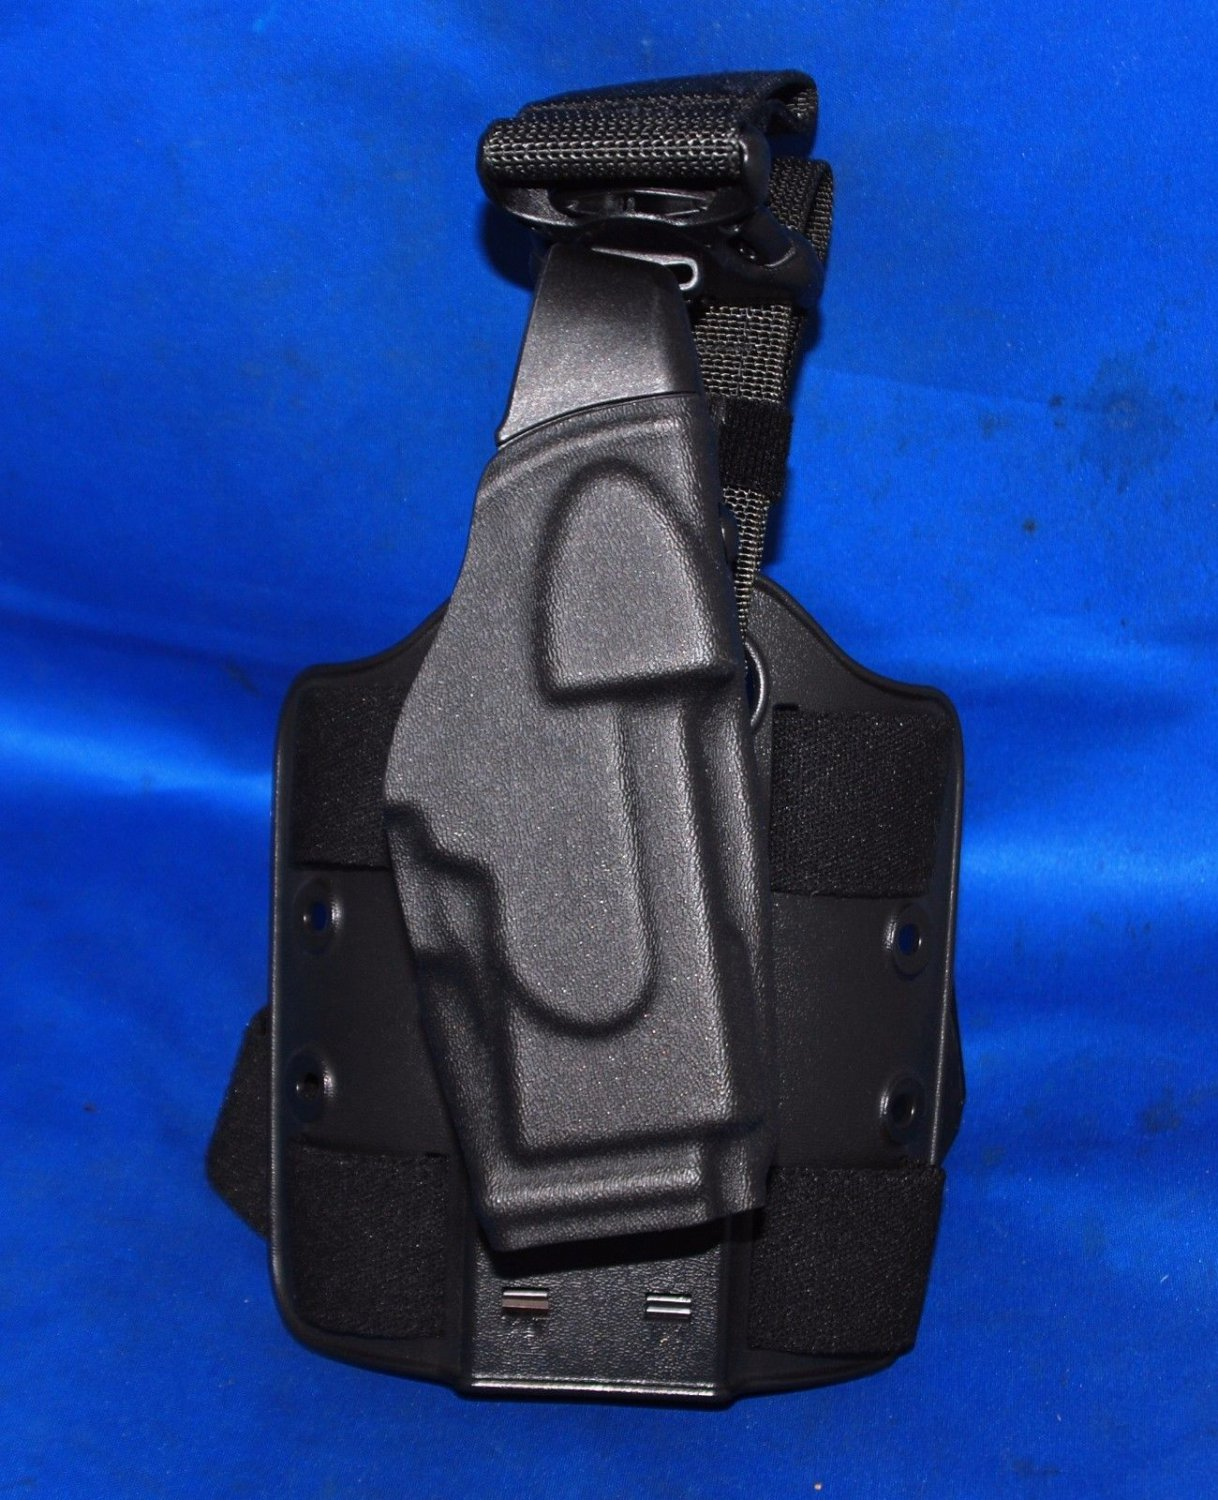 SAFARILAND X26 TASER HOLSTER WITH LEG HARNESS NEW IN PACKAGE BLACK PLAIN